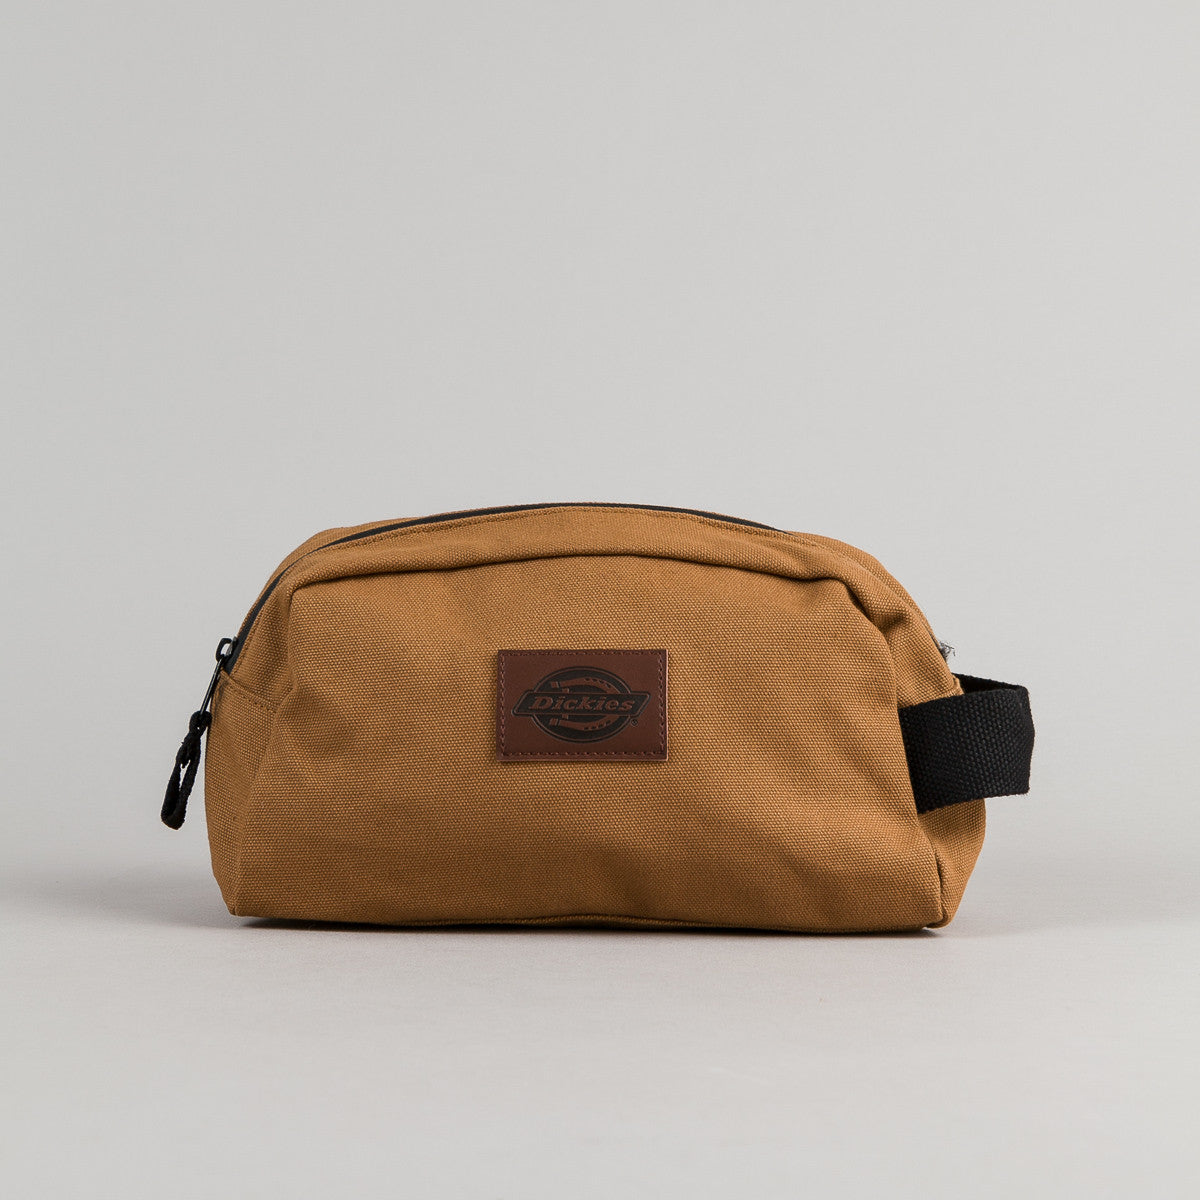 Dickies Sellersburg Bag - Brown Duck